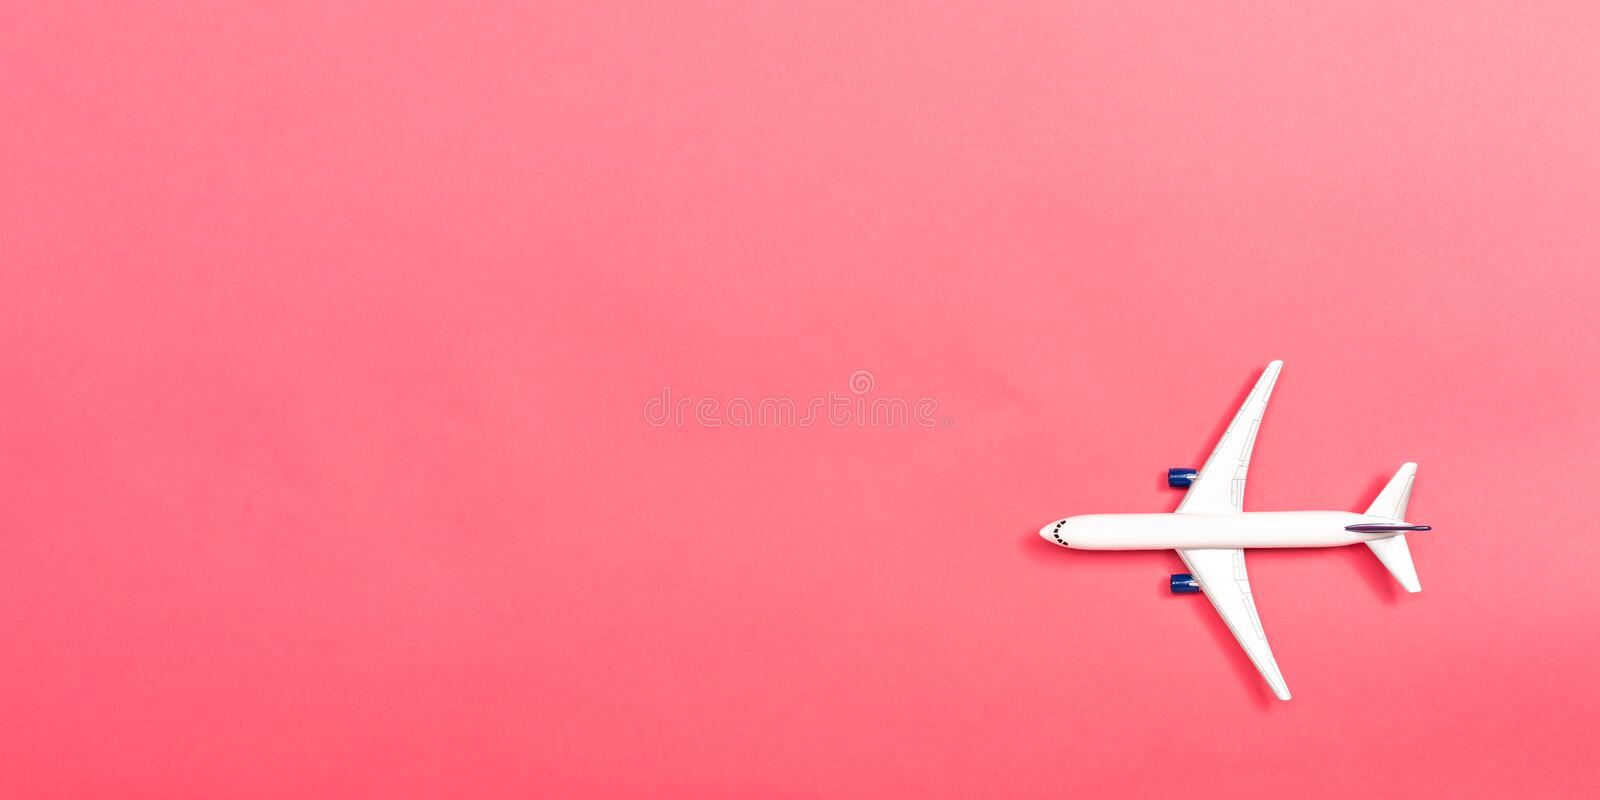 A toy airplane. On a pink paper background royalty free stock photos